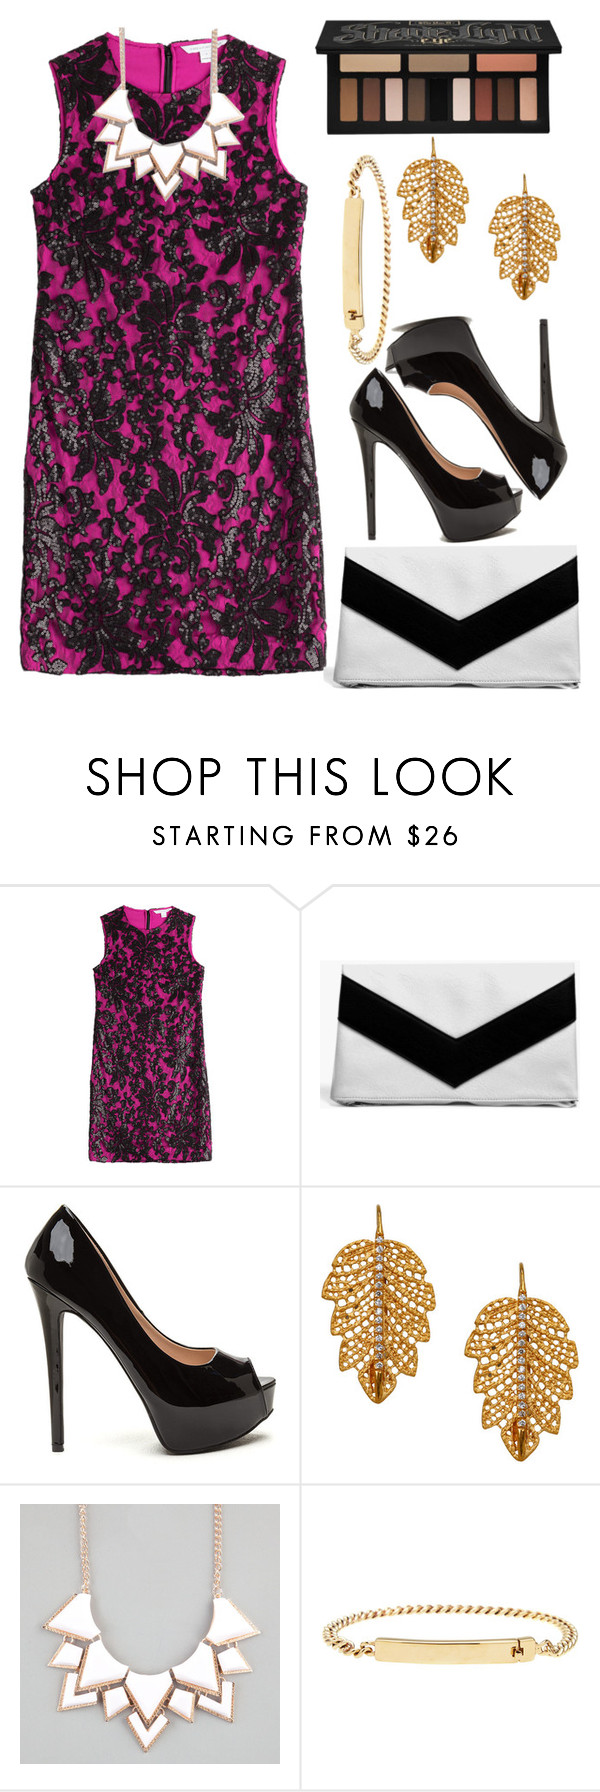 """""""Strong Suit"""" by egordon2 ❤ liked on Polyvore featuring Diane Von Furstenberg, Boohoo, Marika, Full Tilt, A.P.C. and Kat Von D"""